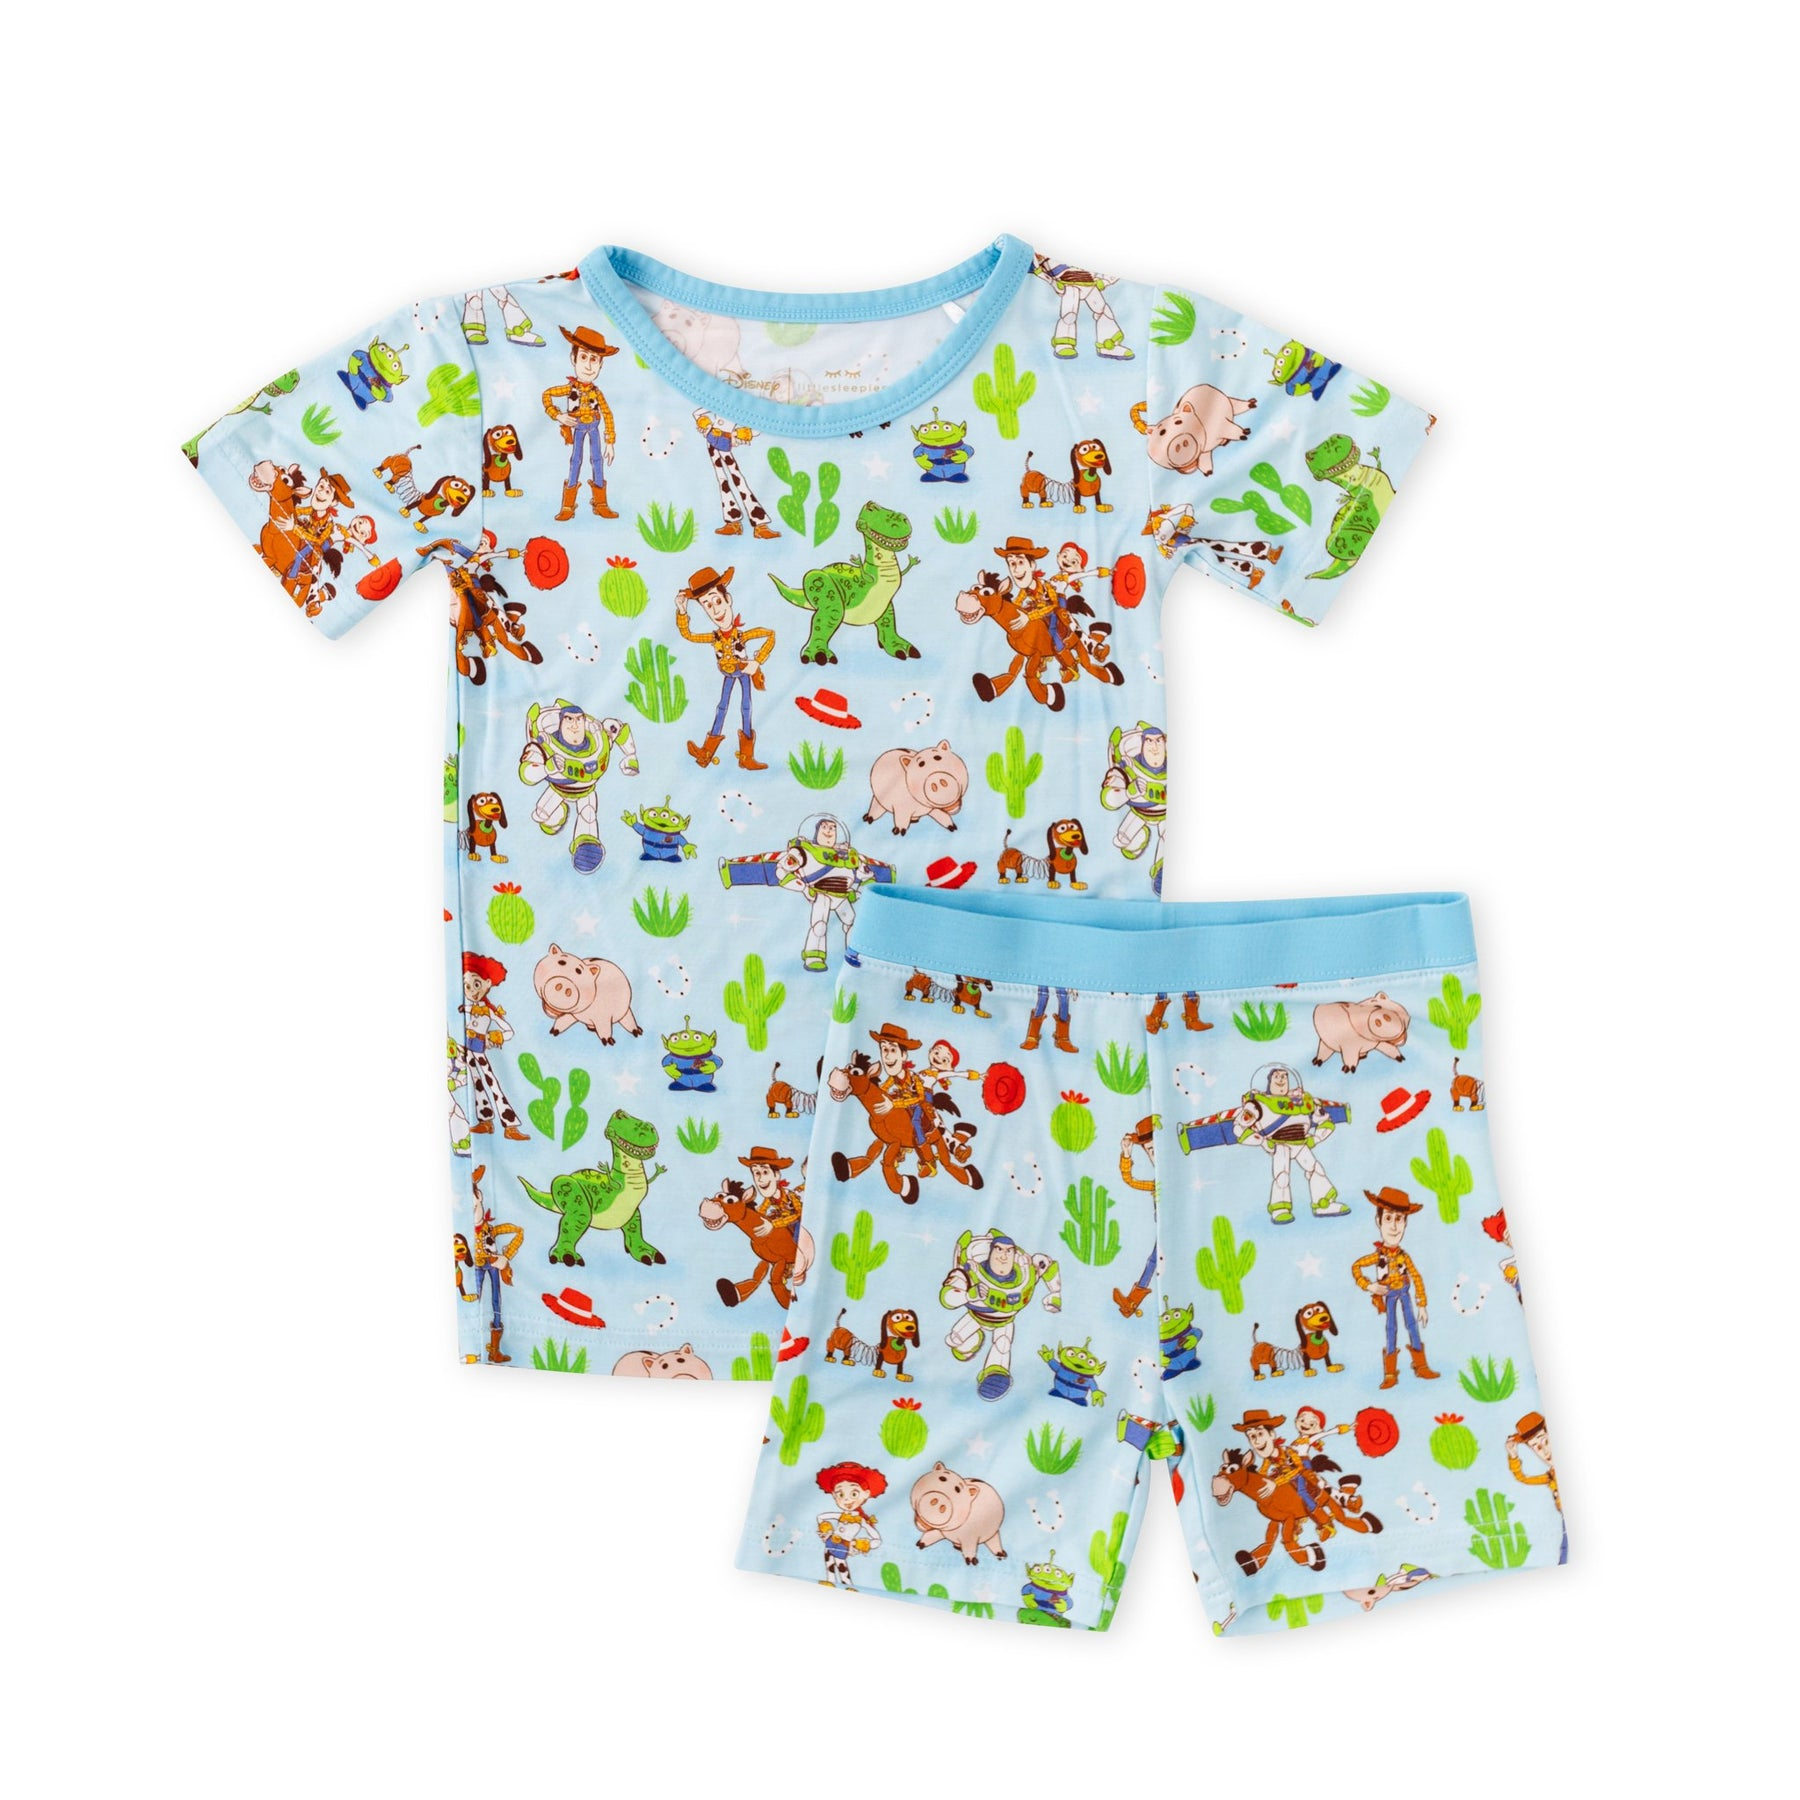 Free Shipping Toy Story X SPAO Details about  / Toy Story Short Sleevs+Short Pants Pajama Set